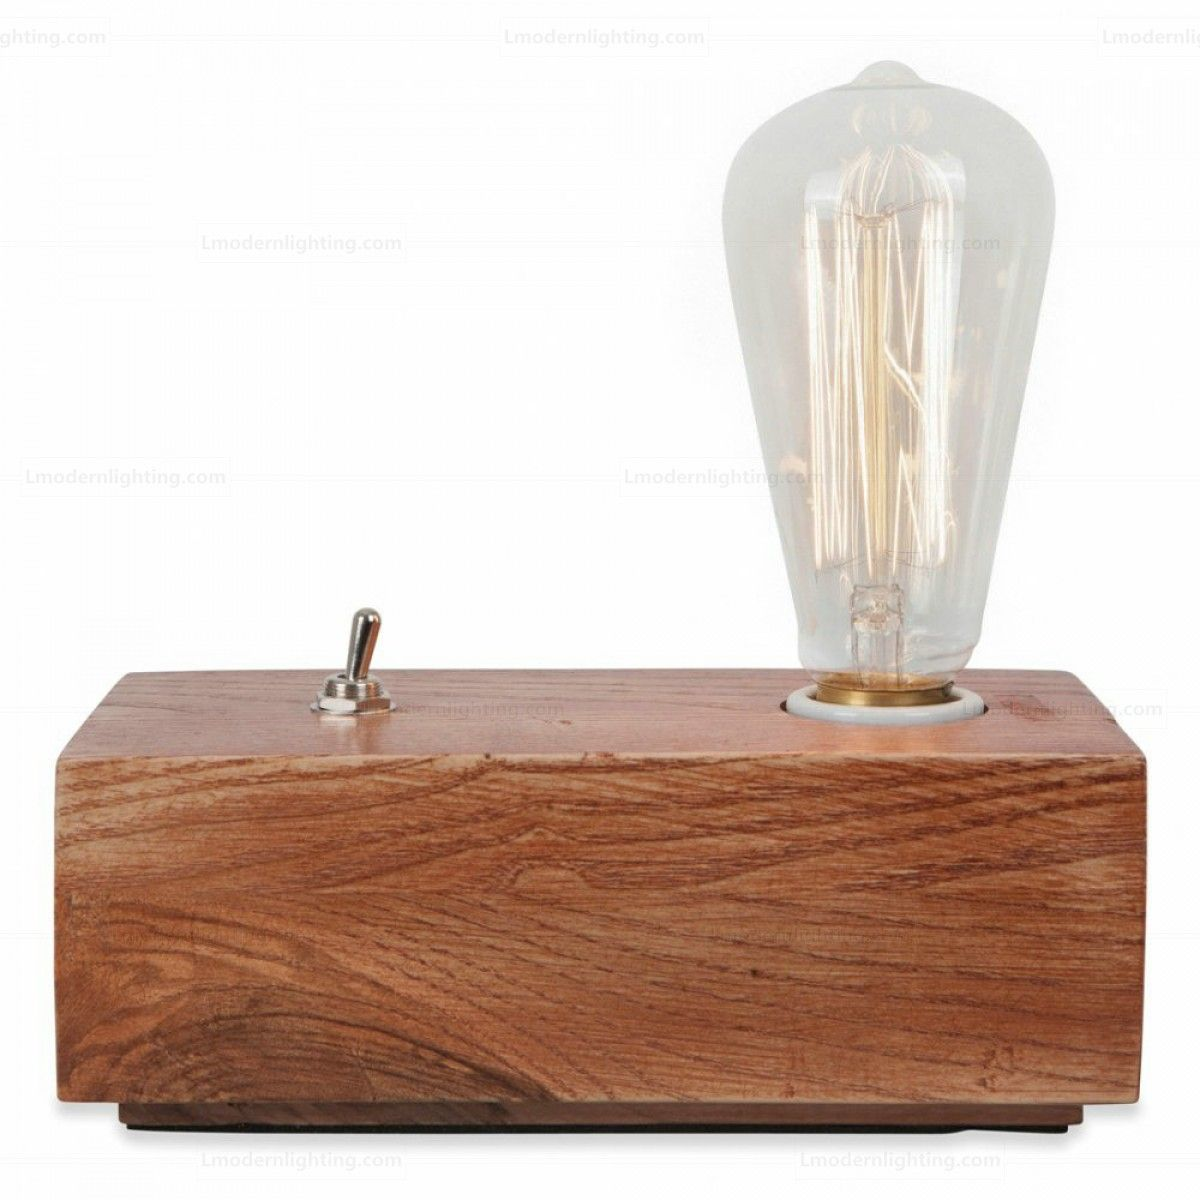 Retro Wood Block Table Lamp Interer Doma Table Lamp Wooden